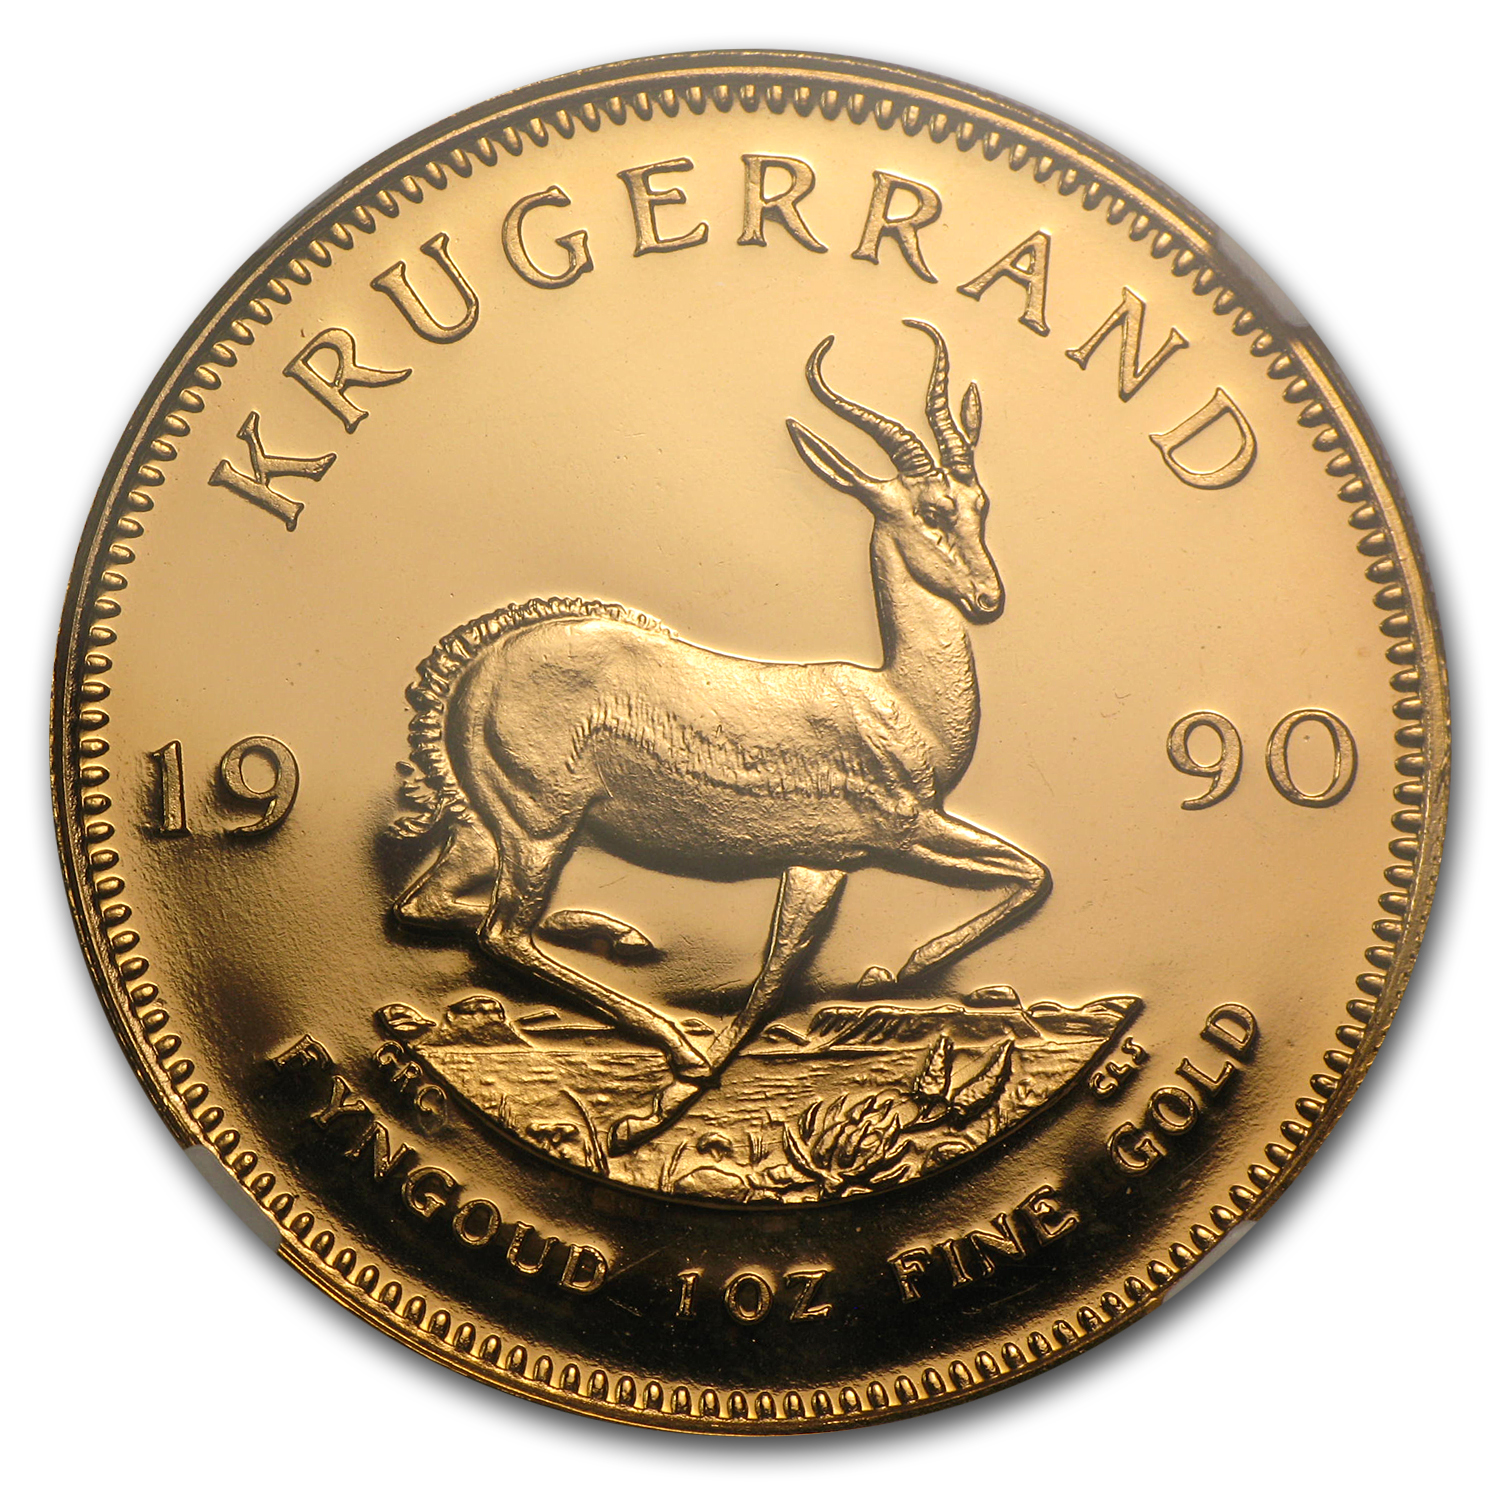 1990 South Africa 1 oz Gold Krugerrand PF-68 NGC (GRC)